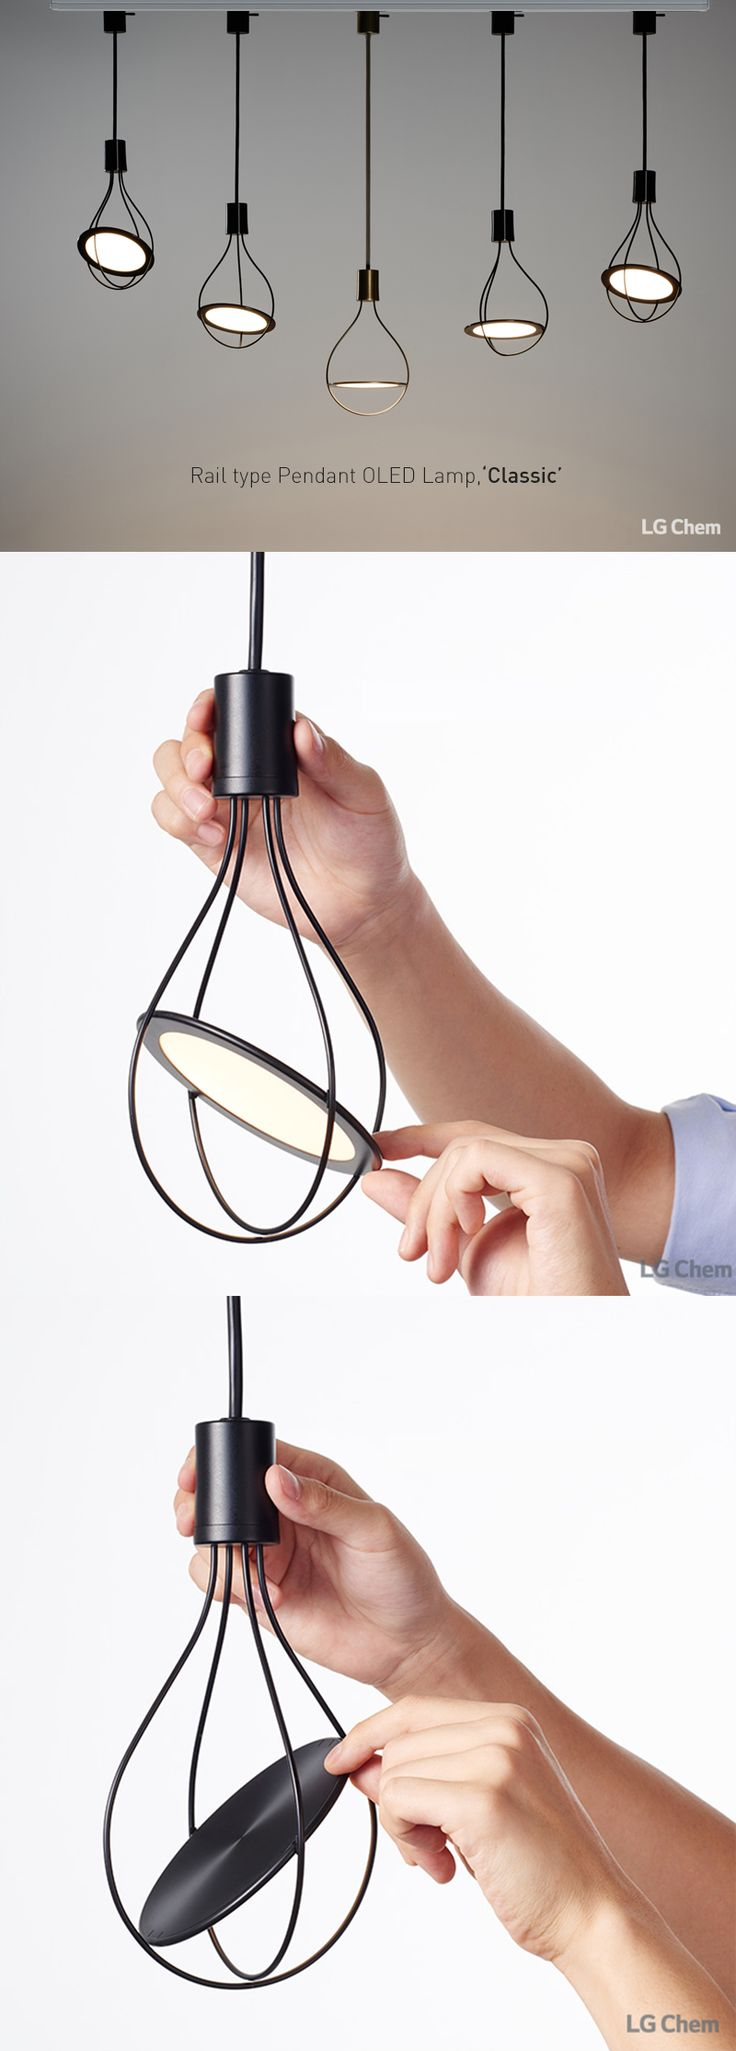 LG Display OLED Classic - the classic light bulb re-shaped using OLED technology.